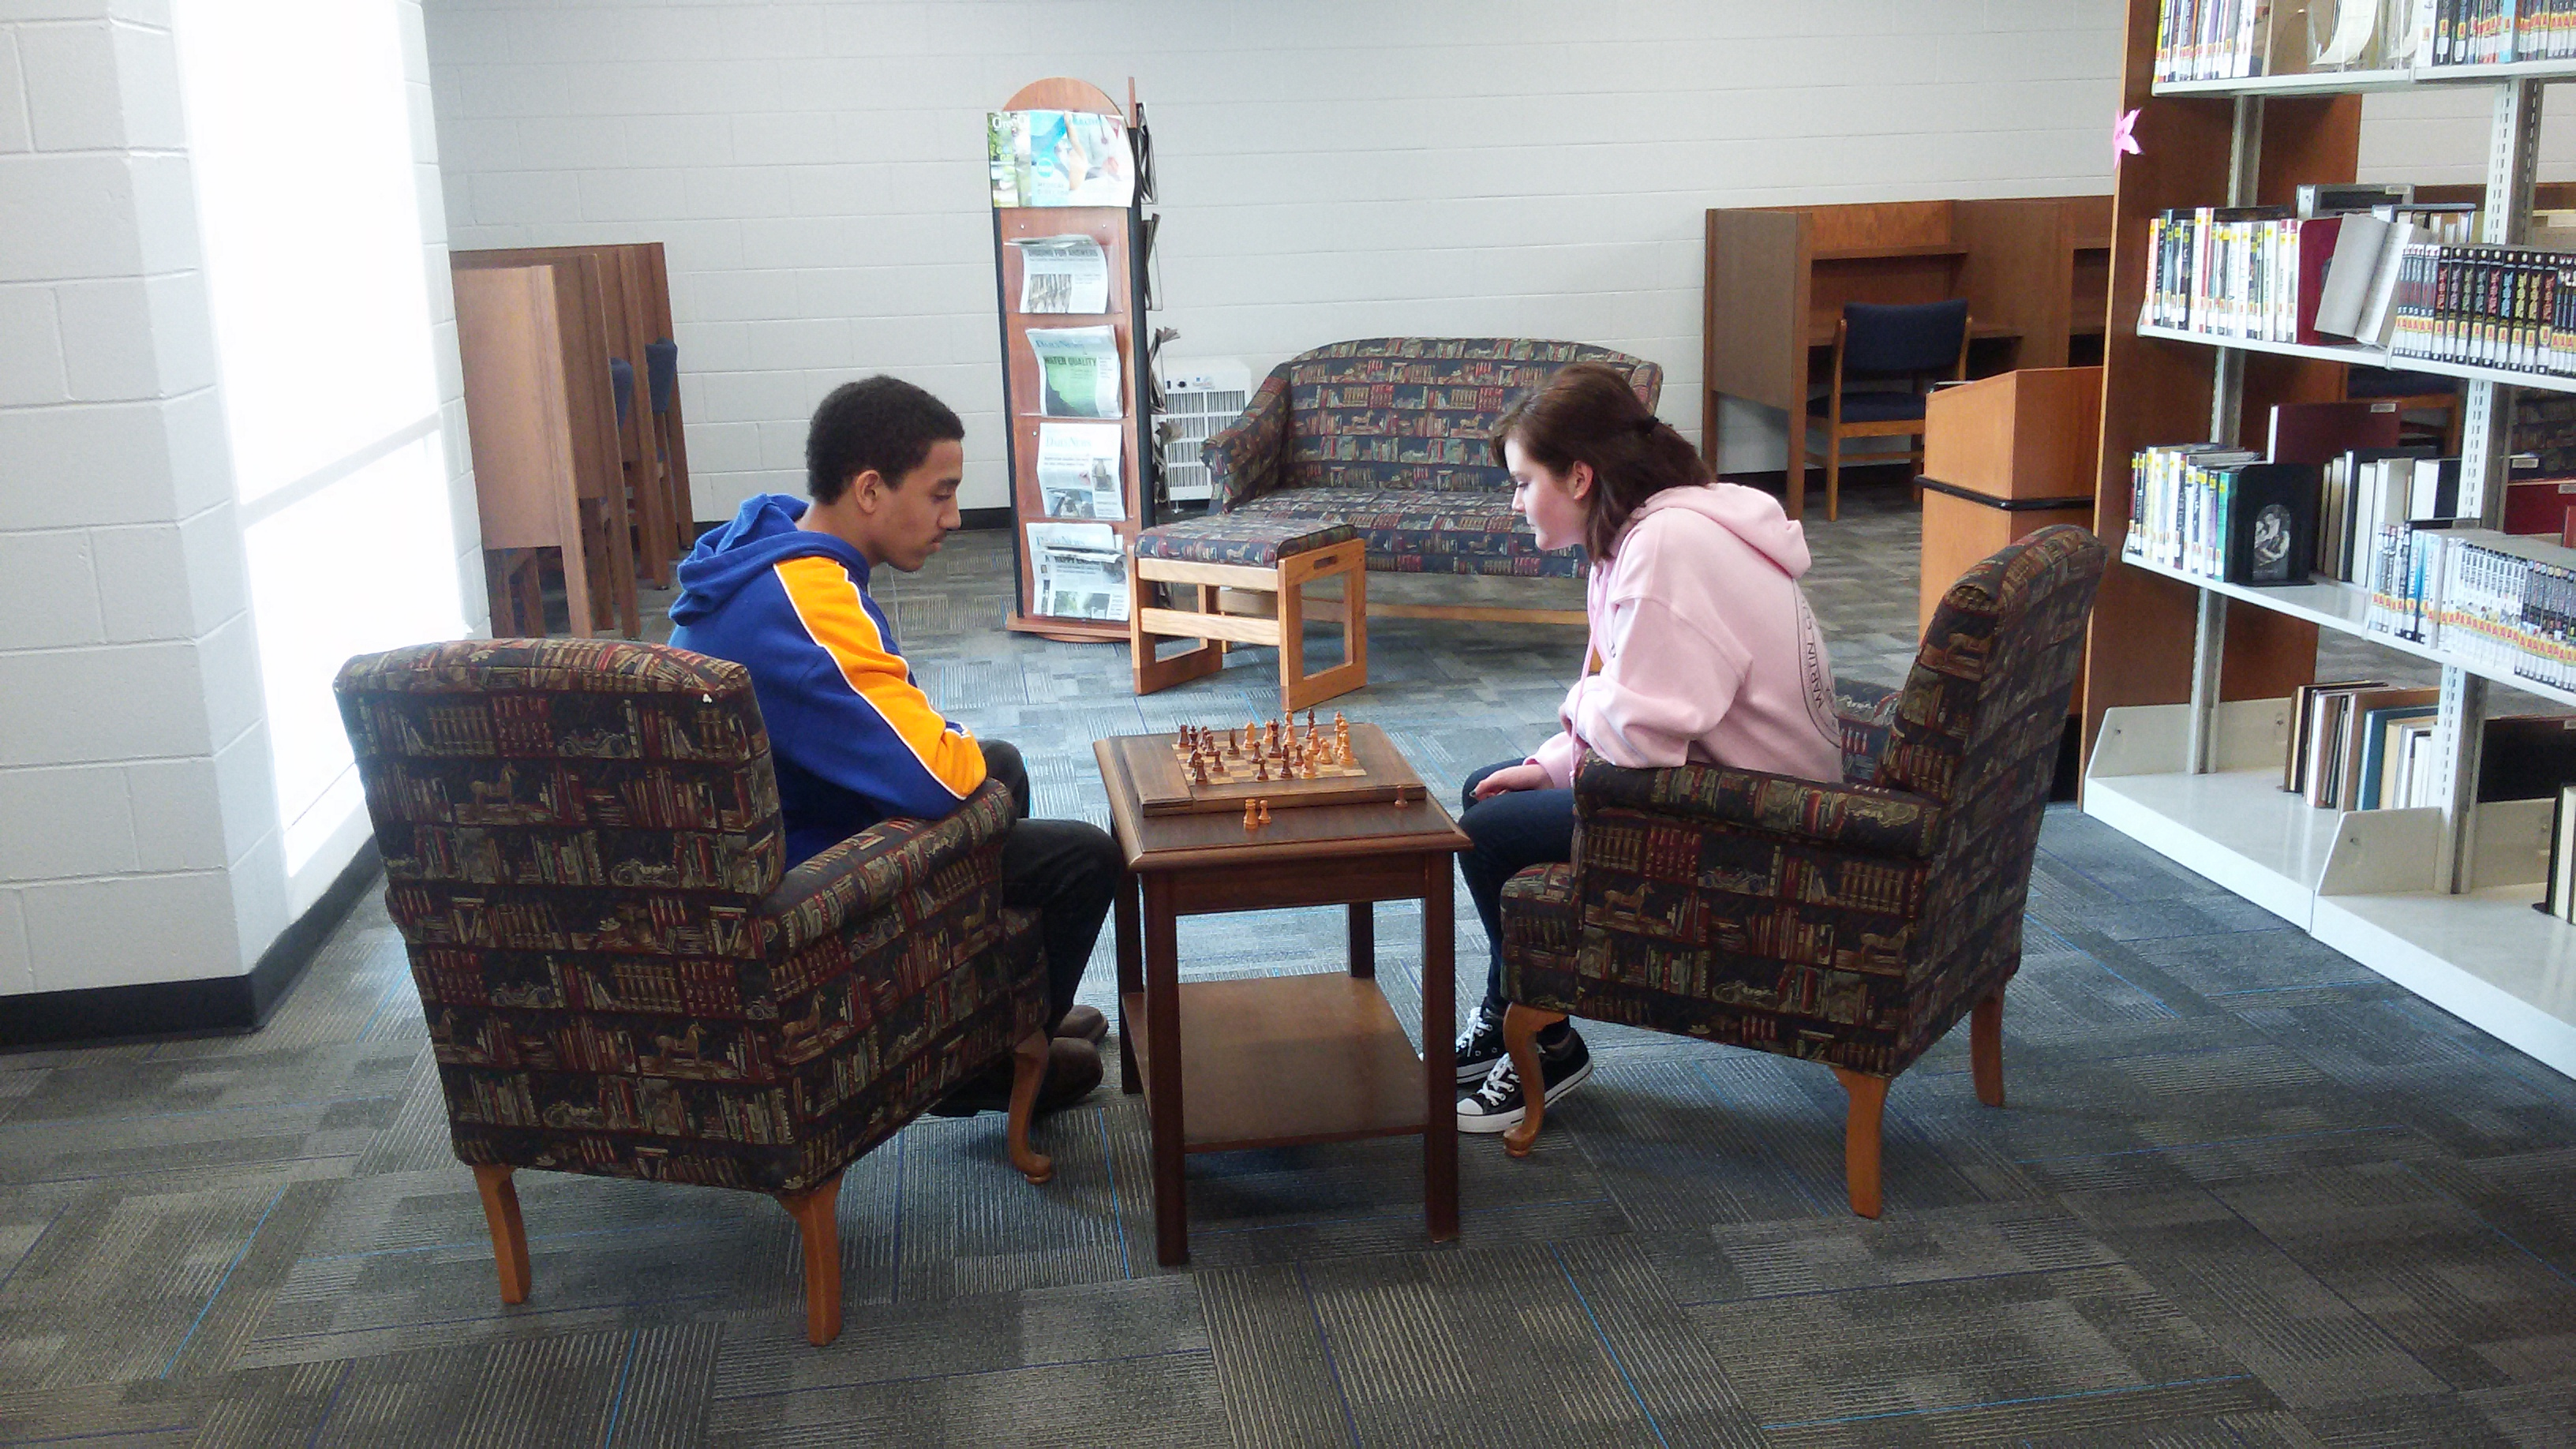 Playing chess in the new seating area